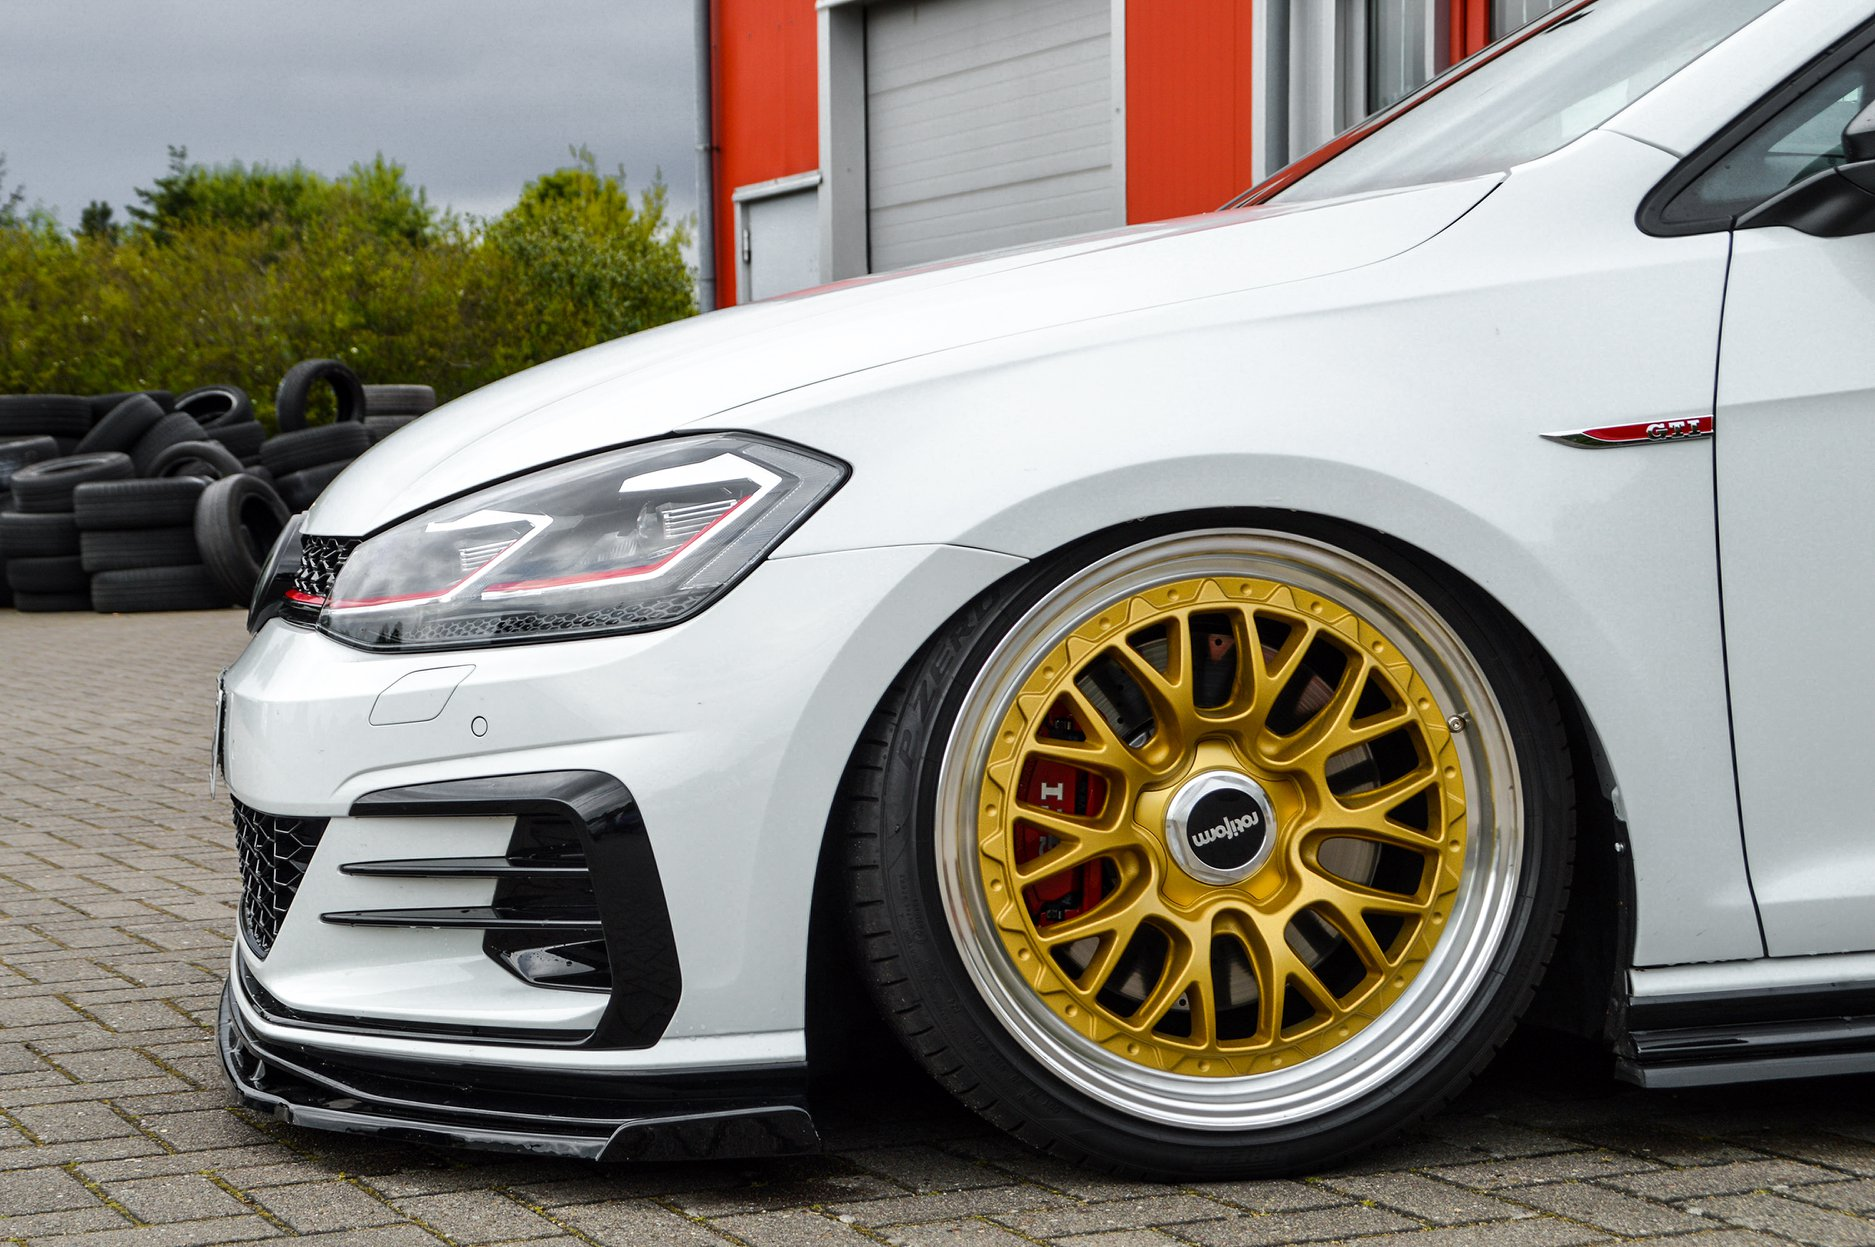 VW-Golf-7-GTI-TCR-by-Ingo-Noak-Tuning-4